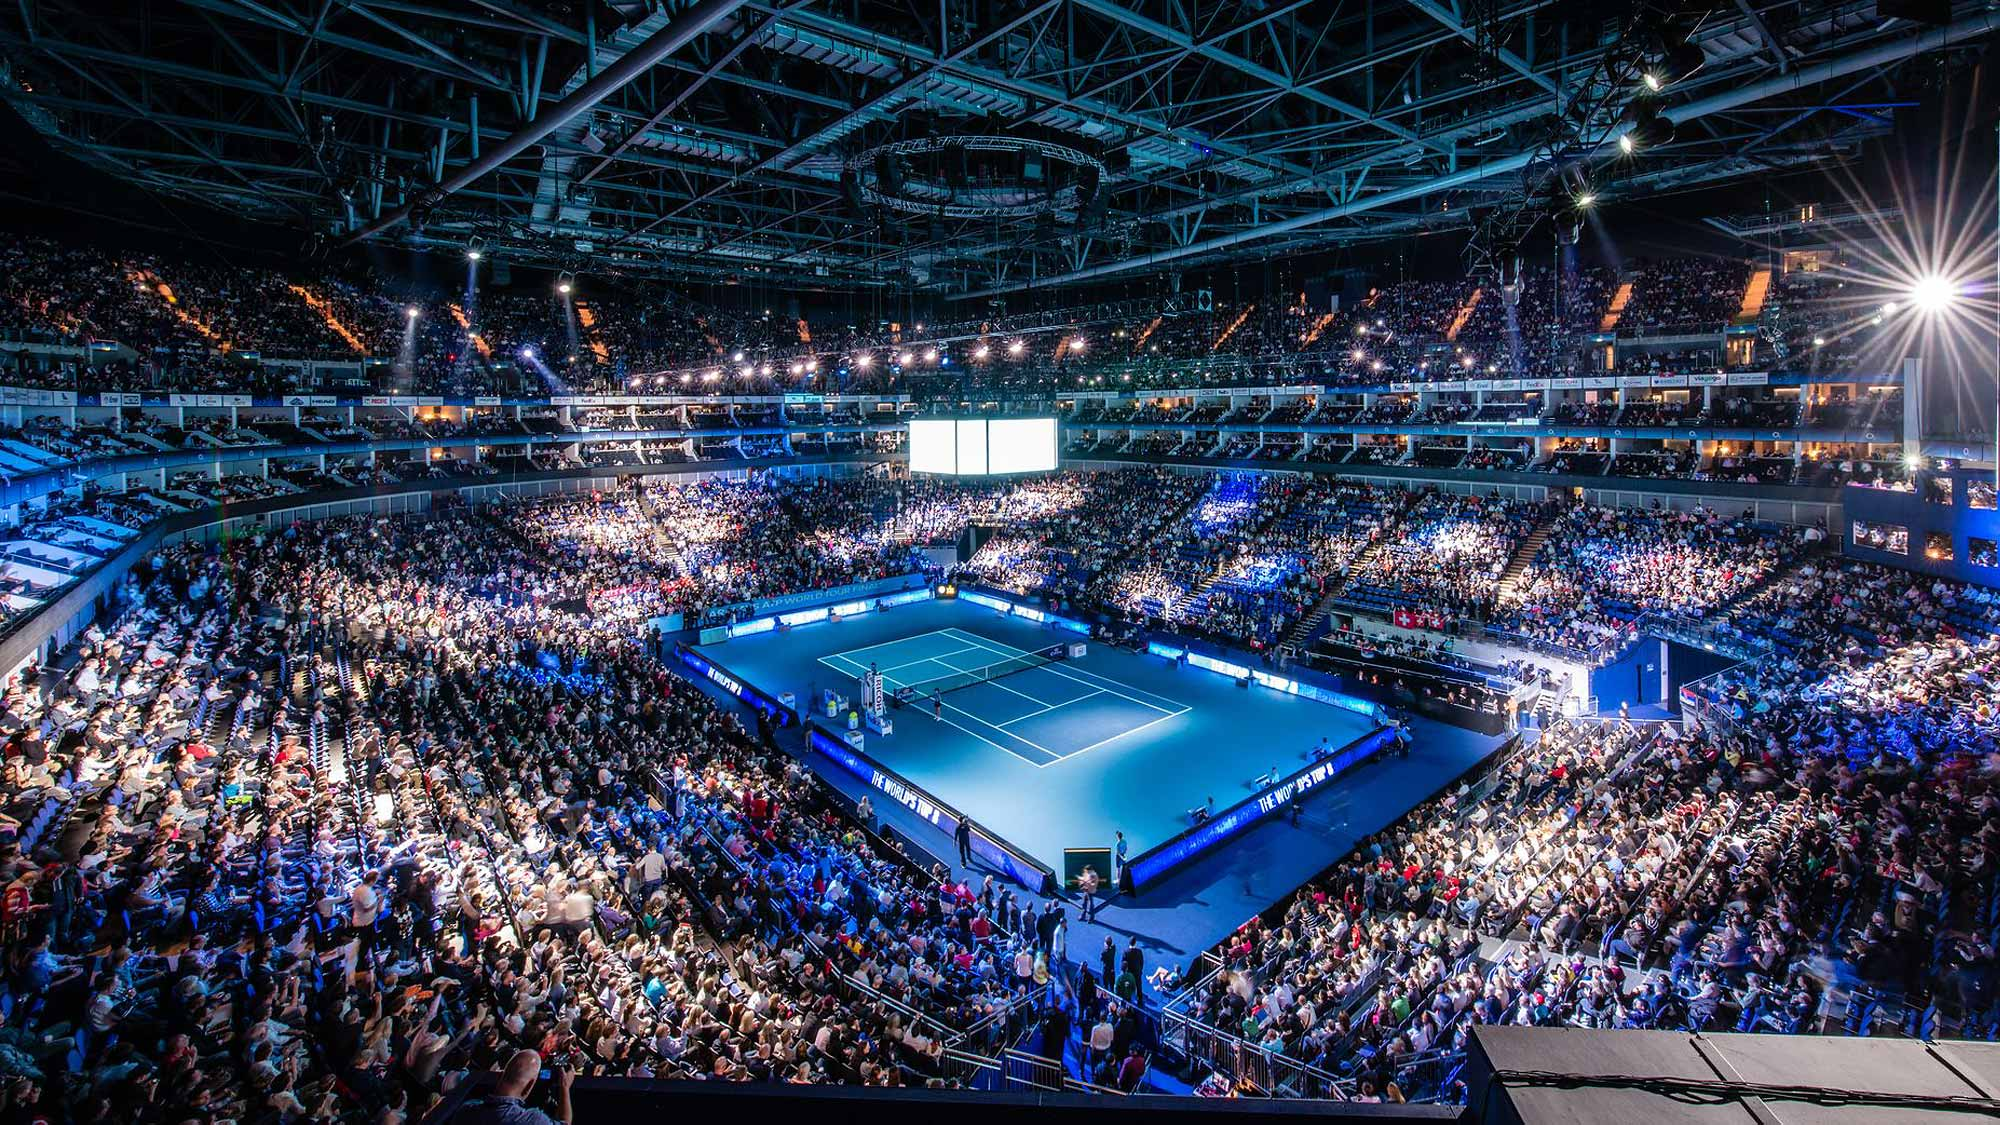 Nitto ATP Finals London 2017